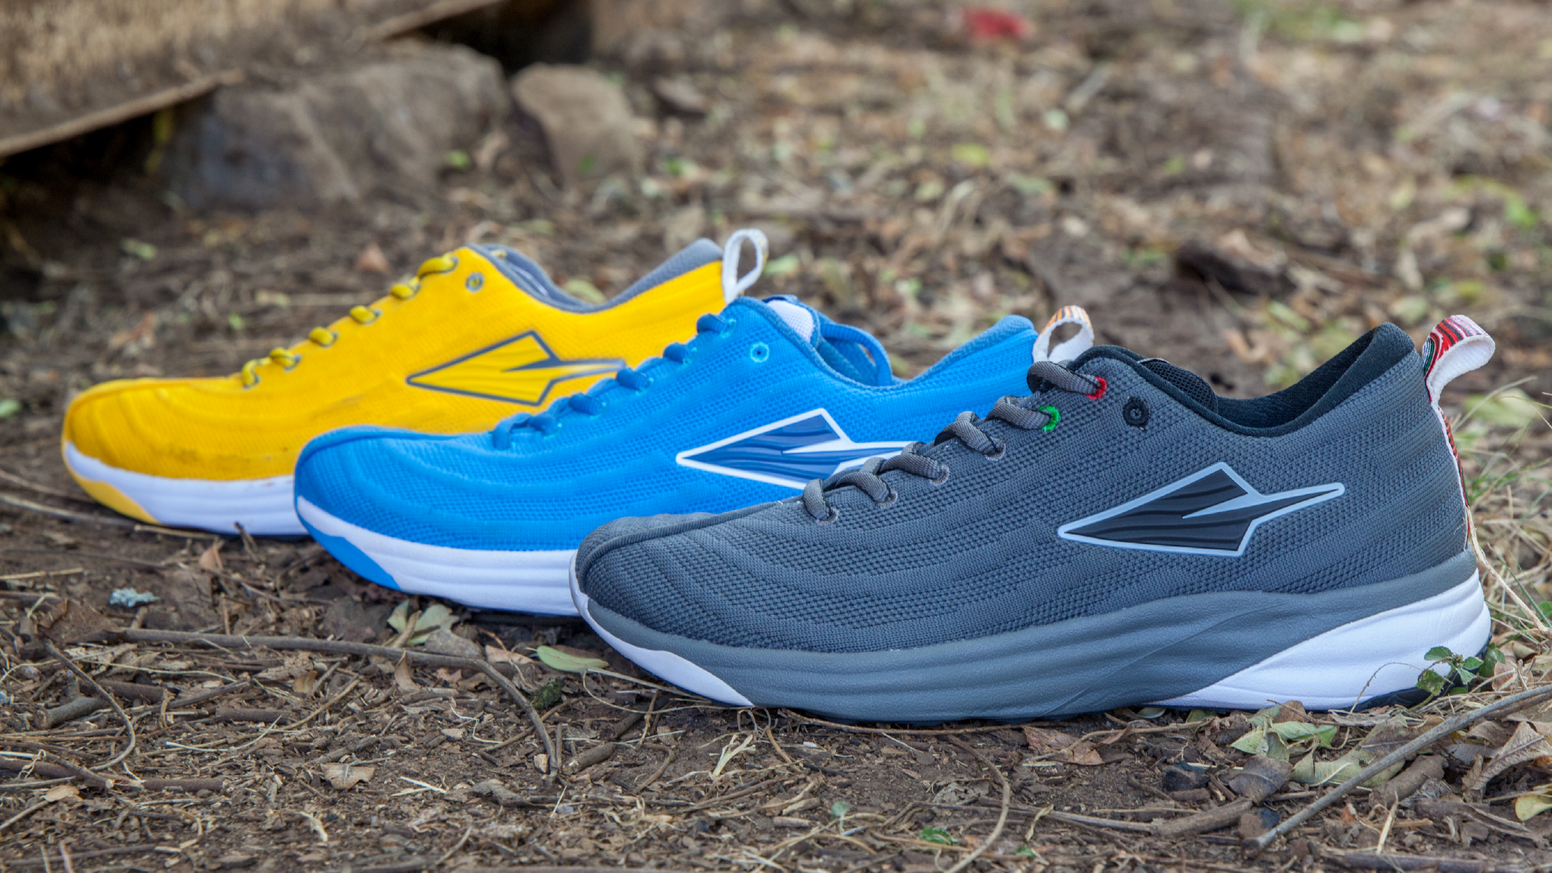 c9bf04894c3f Enda Lapatet  The Game-Changing Running Shoe by Enda — Kickstarter